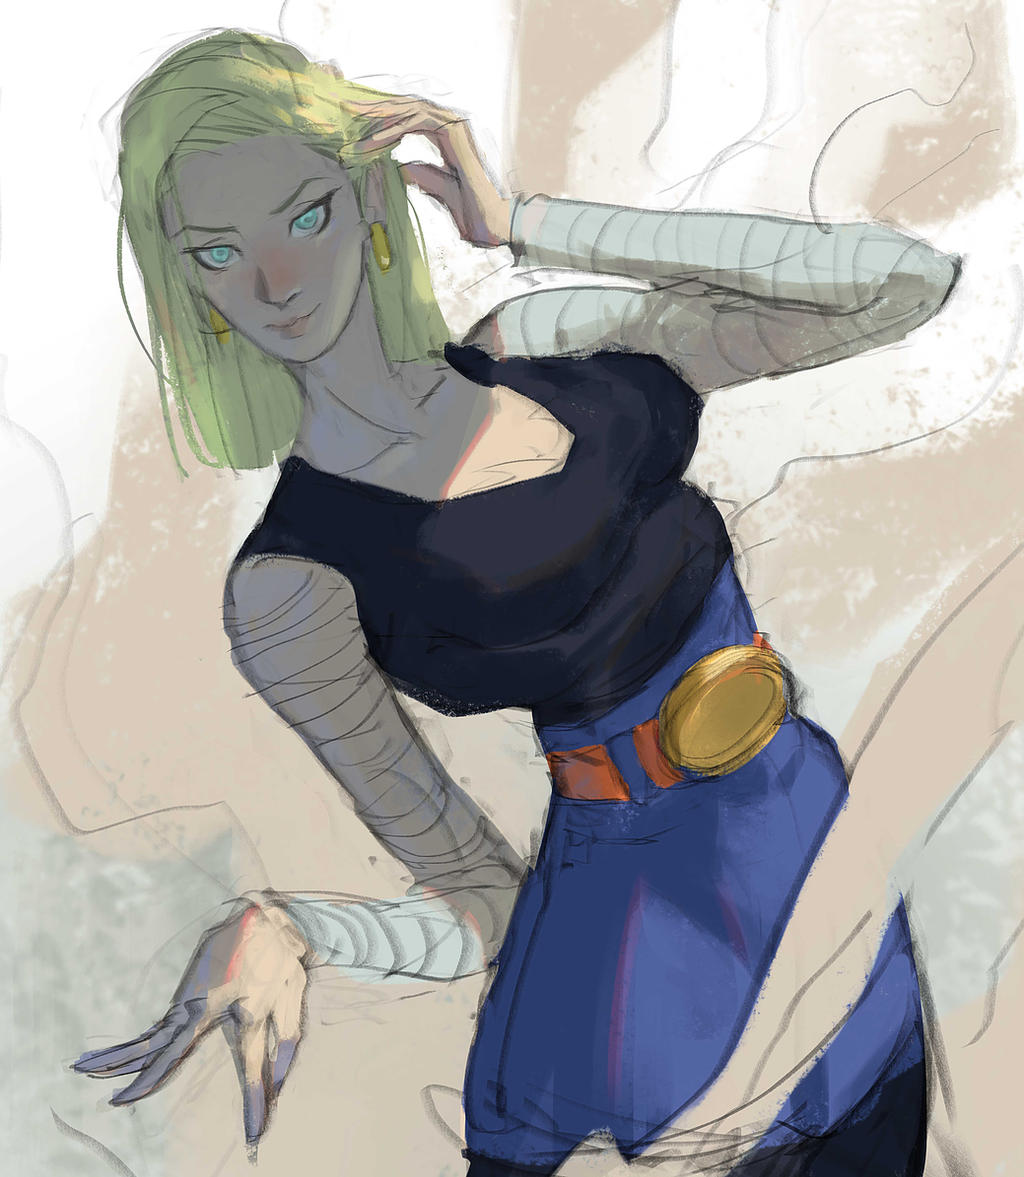 Android 18 And Tail Deviantart: Android 18 By Ramonn90 On DeviantArt